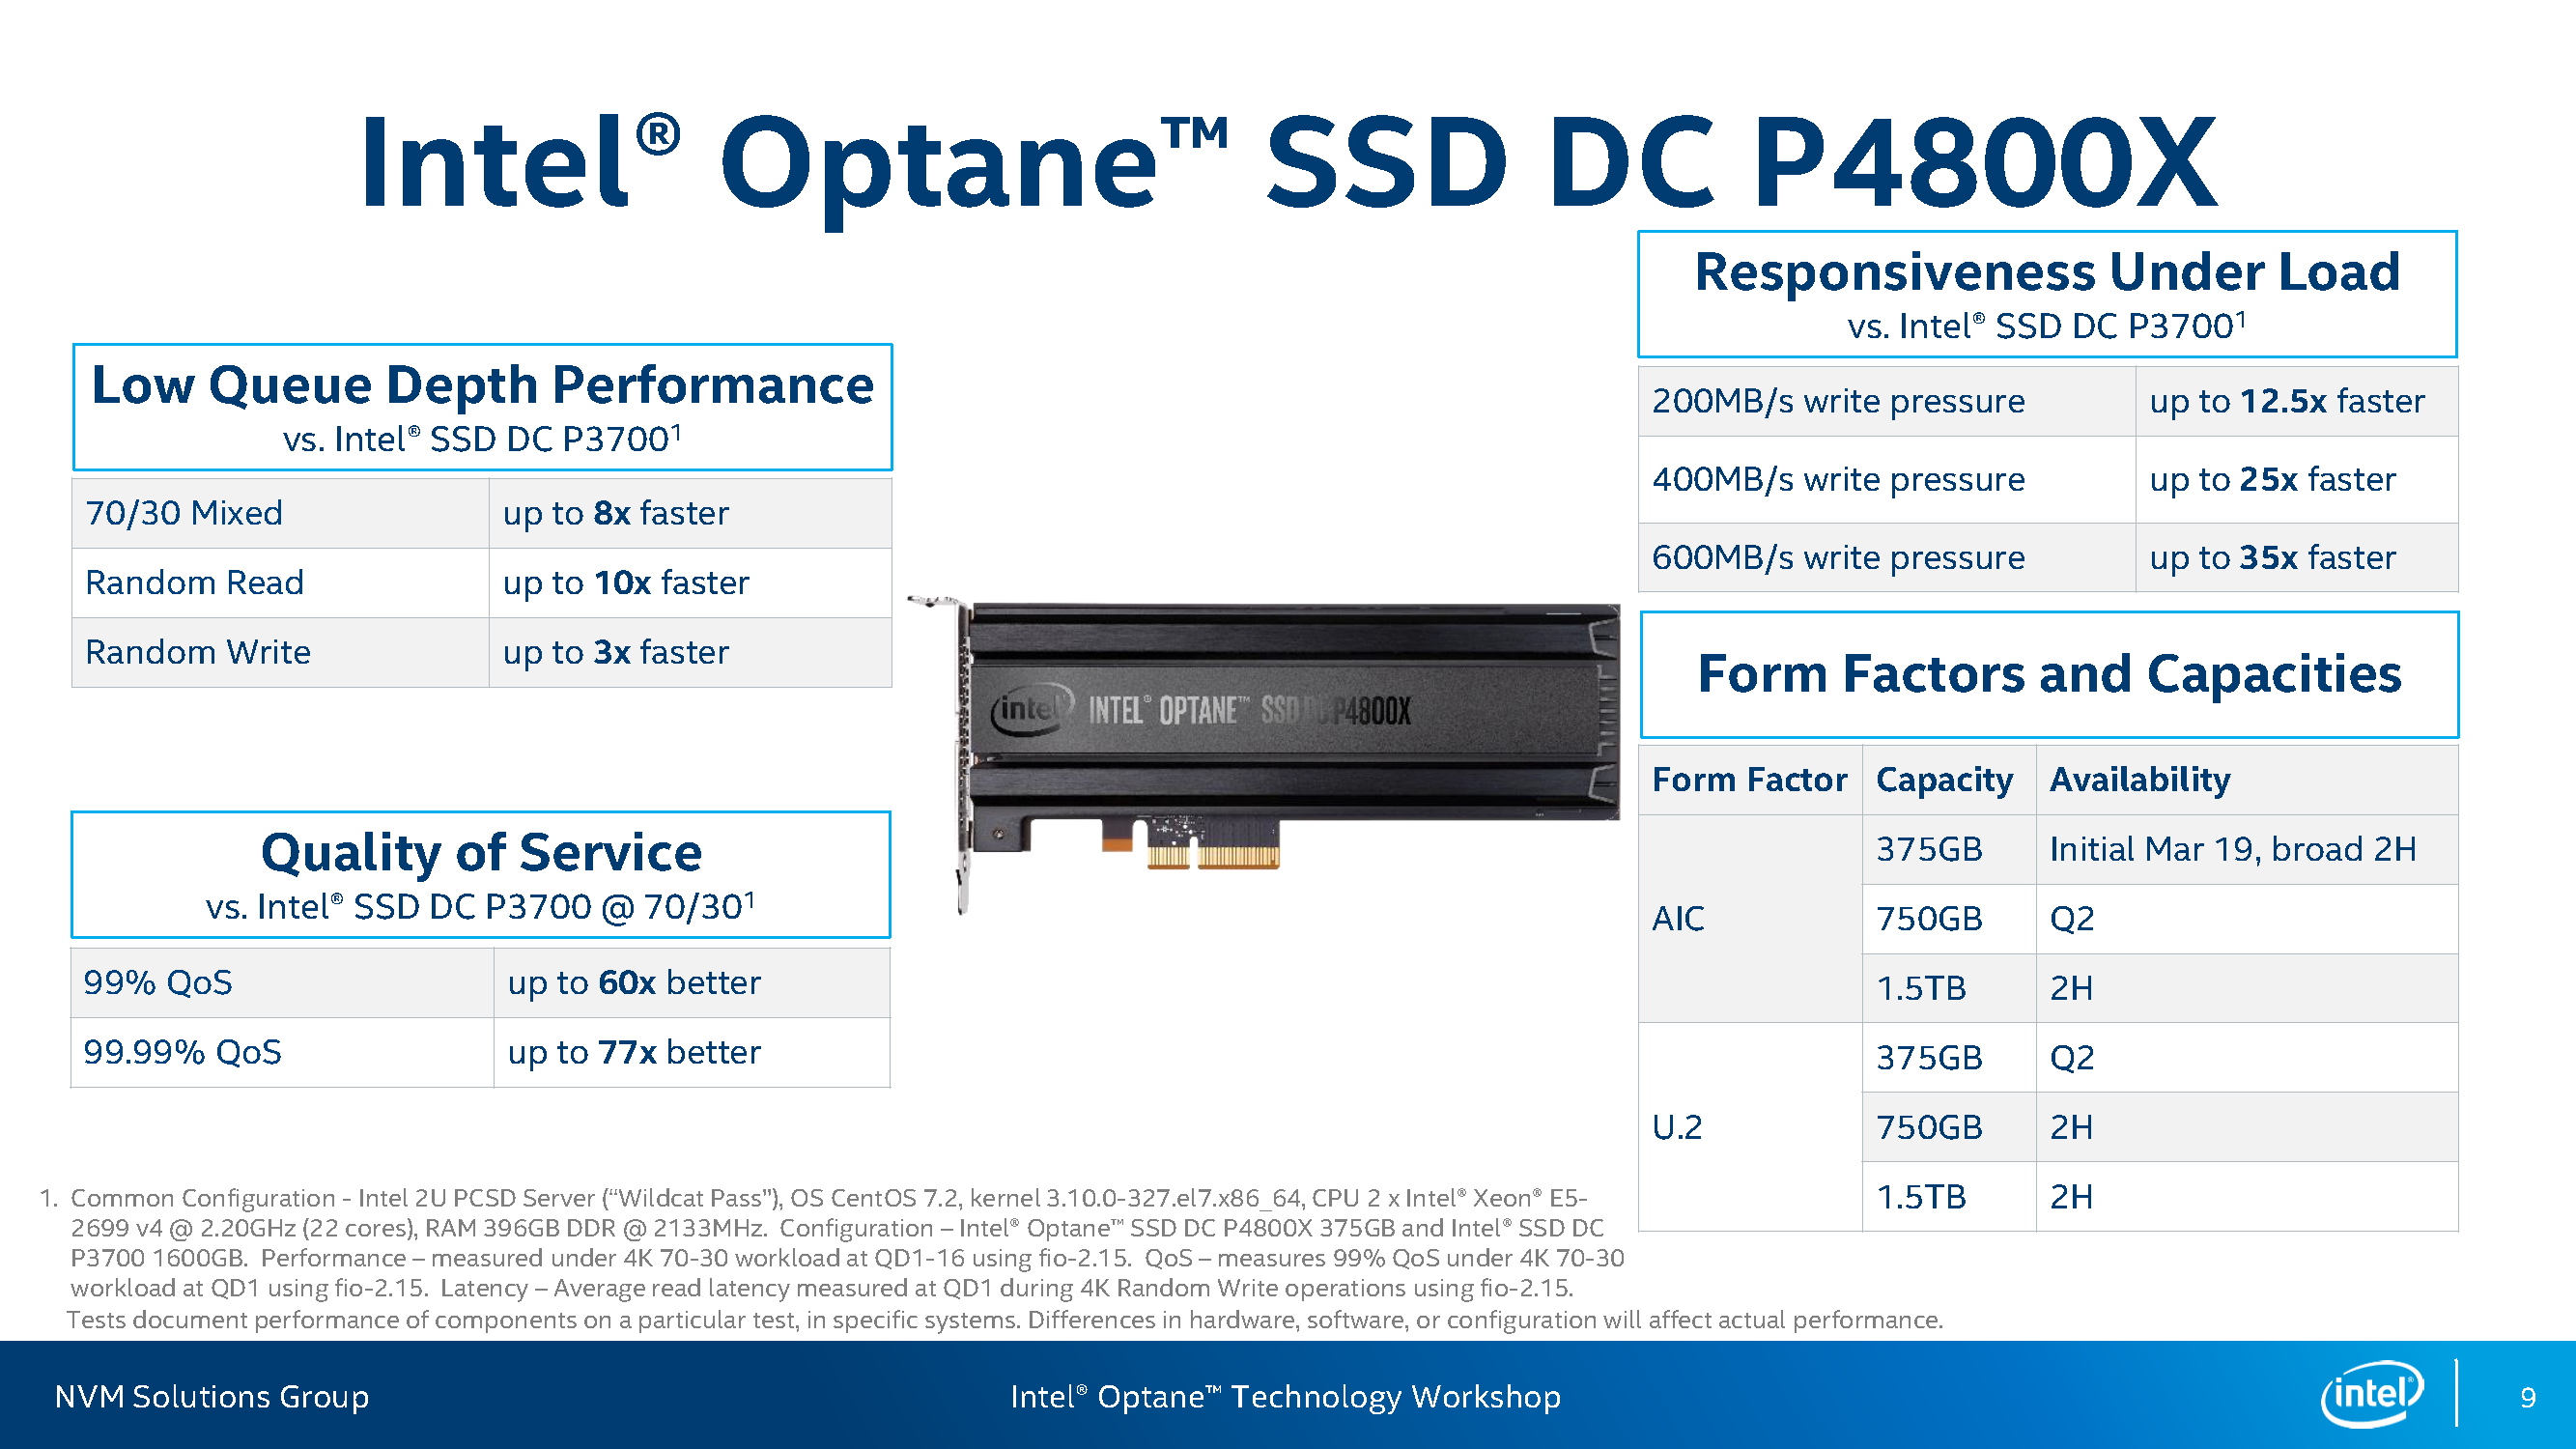 Intel reveals it's first Optane SSD that has high memory capacity